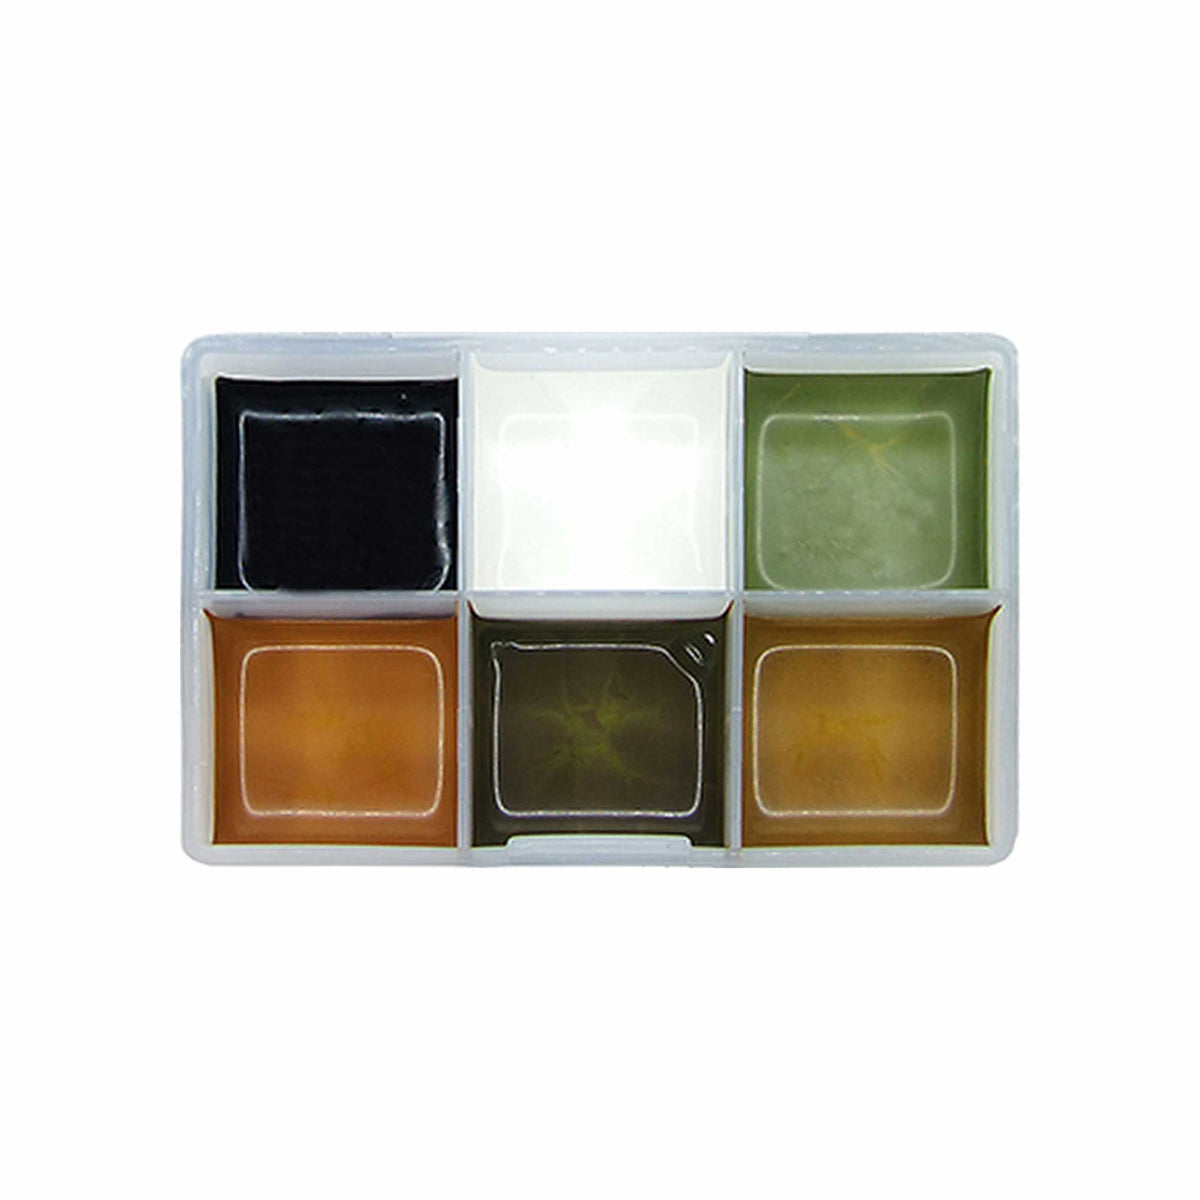 Ripper FX Alcohol Pocket Mini Palette - Tooth #1